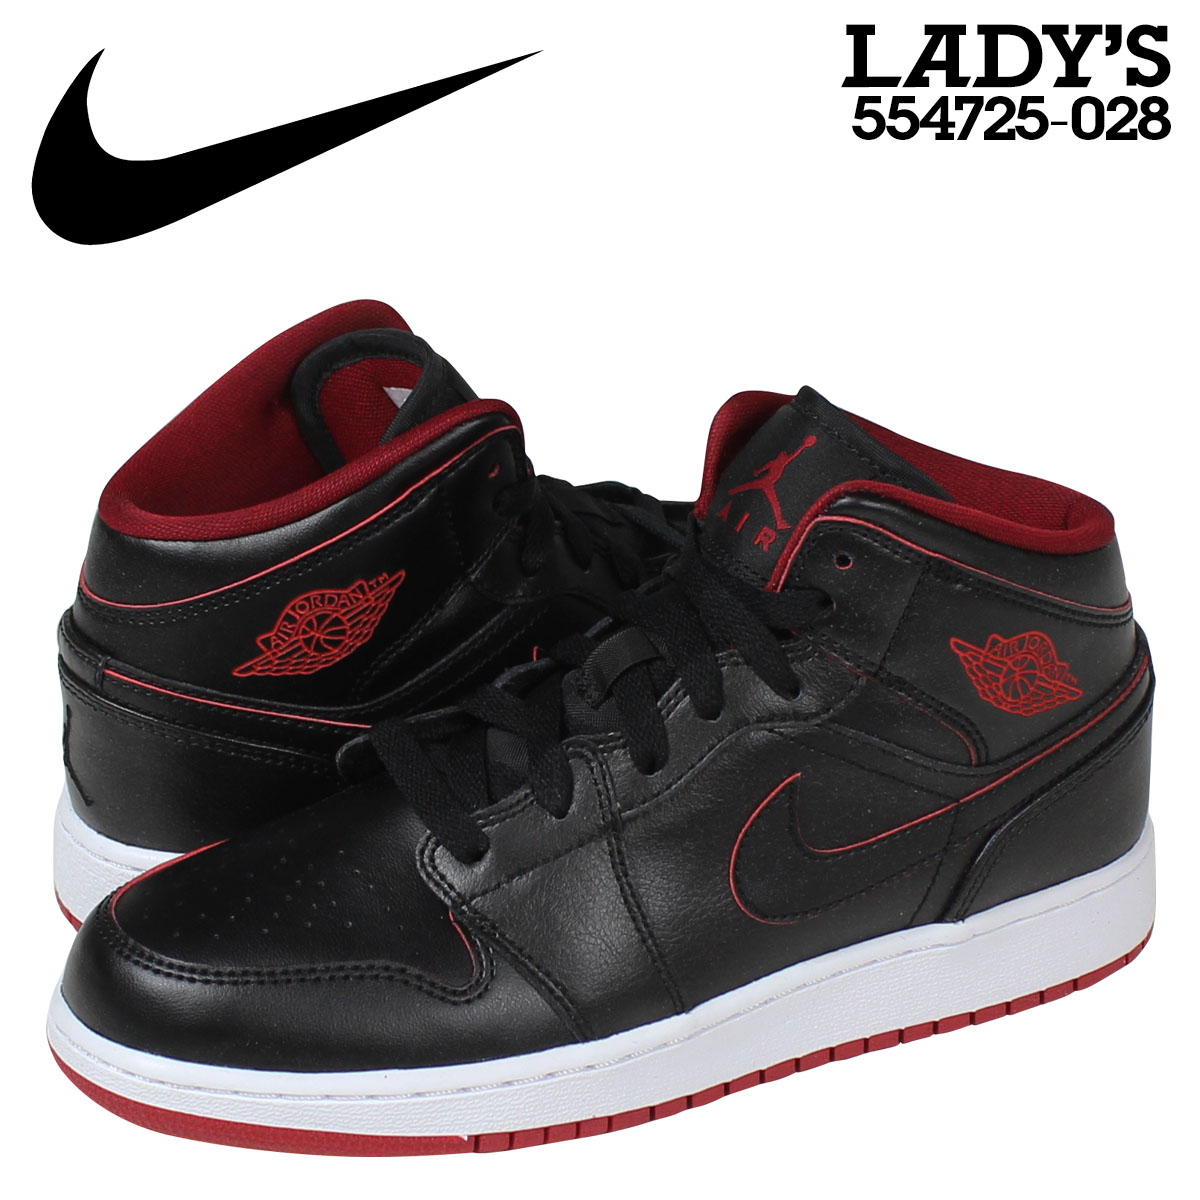 e6ad8569d7a9 ... Nike NIKE Air Jordan sneakers Womens AIR JORDAN 1 MID BG Air Jordan 1  mid 554725 ...